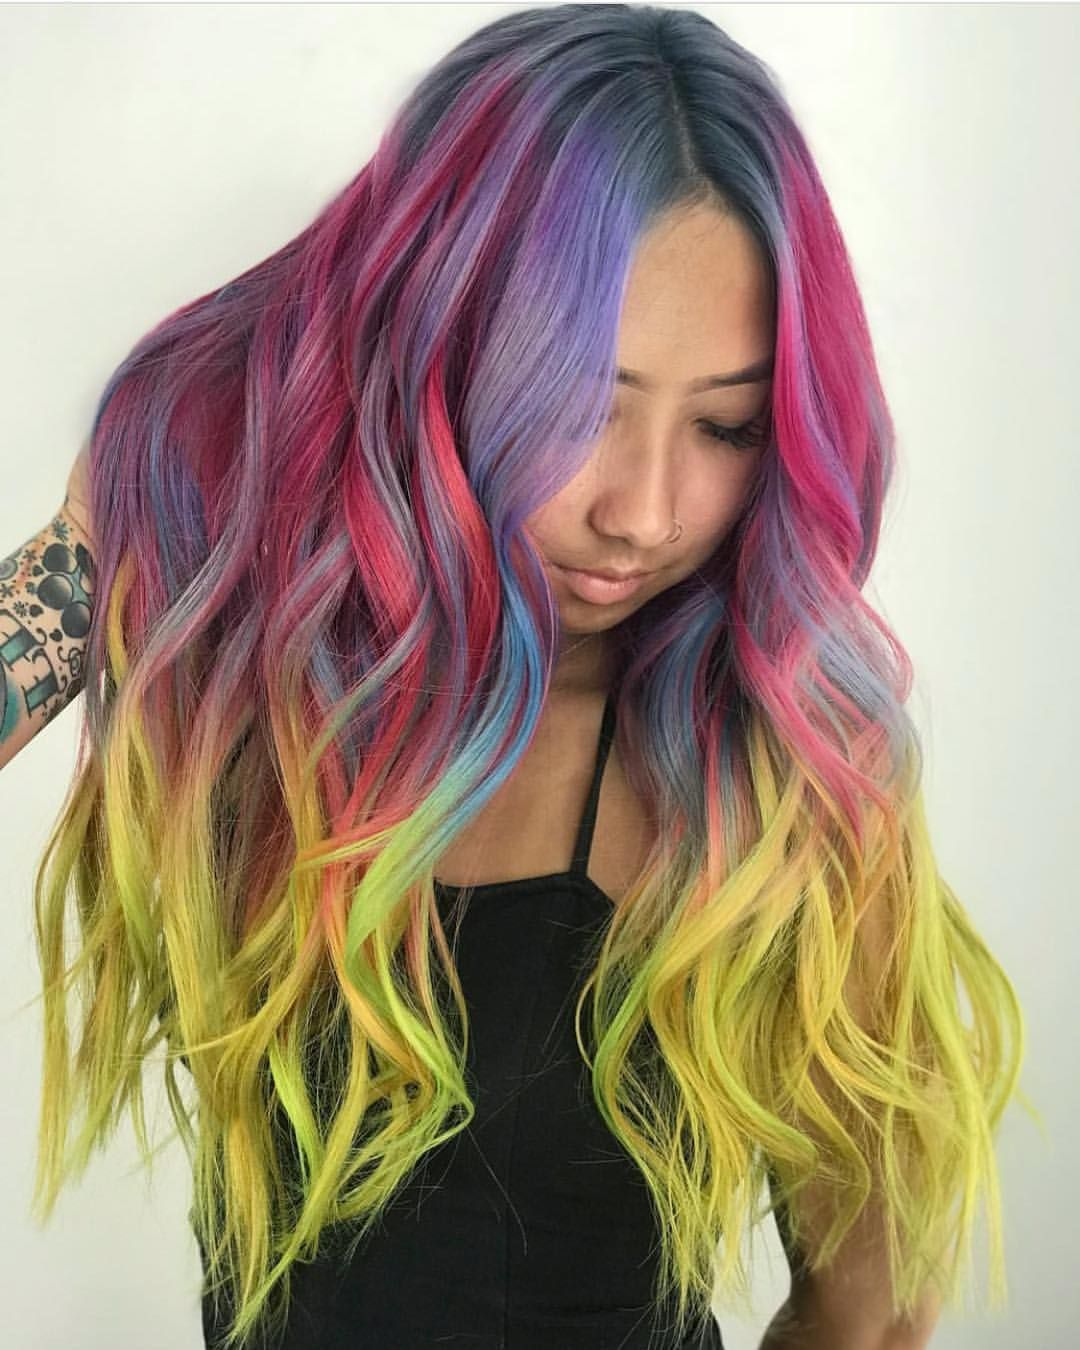 Kimberlytayhair and amburgerofhair are the artists pulp riot is